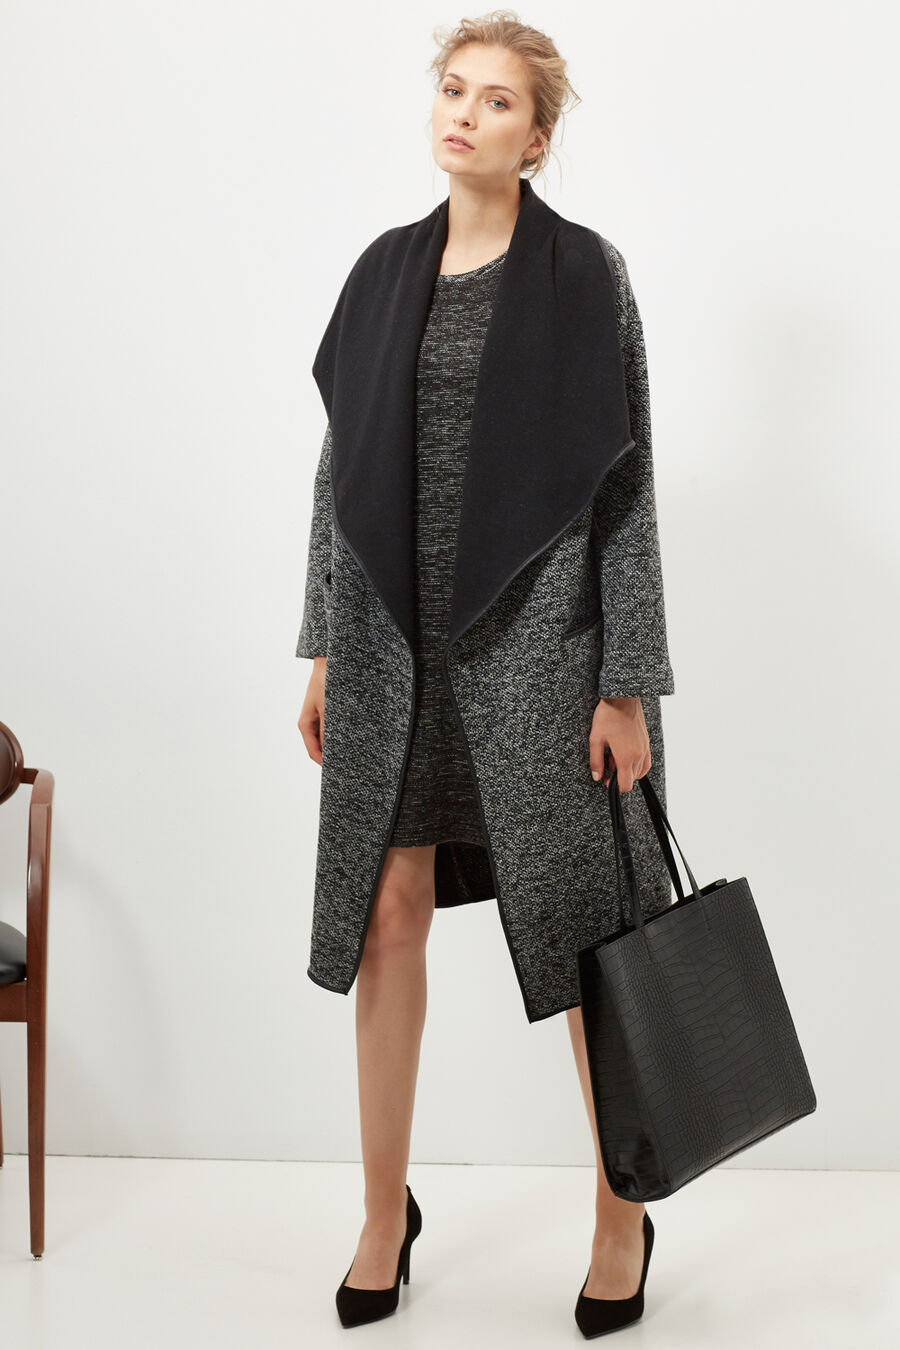 Mottled coat